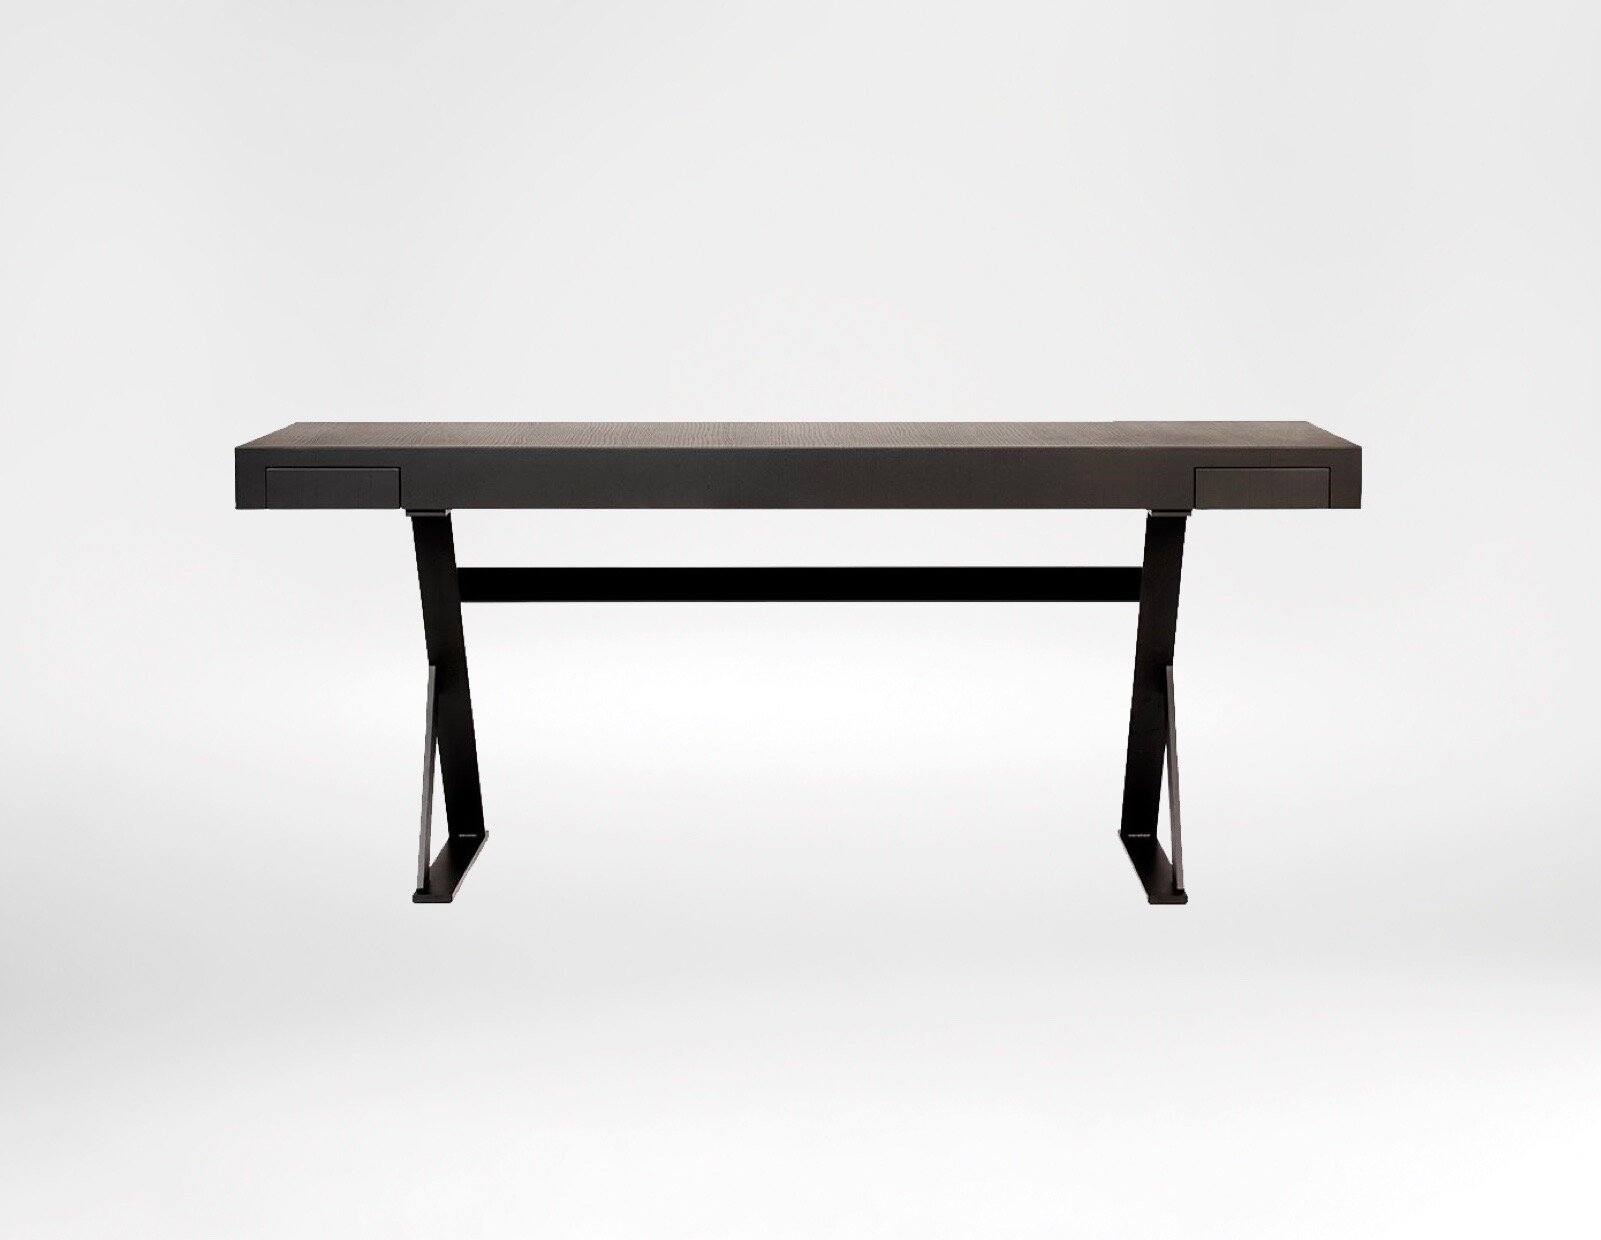 King Desk - The King desk delicately balances a contemporary light graceful profile with strong materials and functionality.